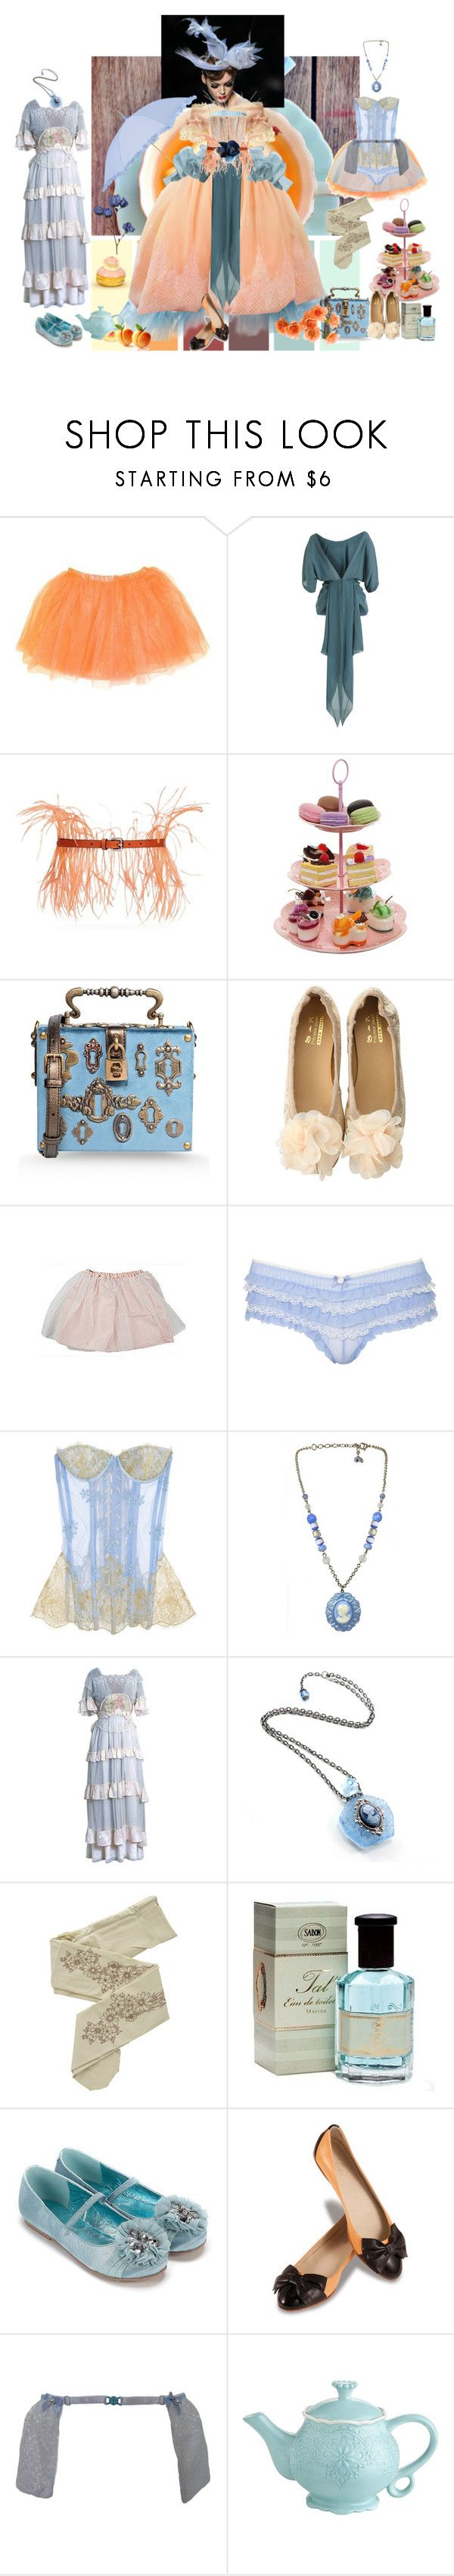 """""""If it ain't Baroque"""" by verysmallgoddess ❤ liked on Polyvore featuring Christian Dior, Alexis Mabille, Maggie Norris Couture, The Row, Emilio Pucci, Dolce&Gabbana, Accessorize, Rosamosario, Tarina Tarantino and ZOHARA"""